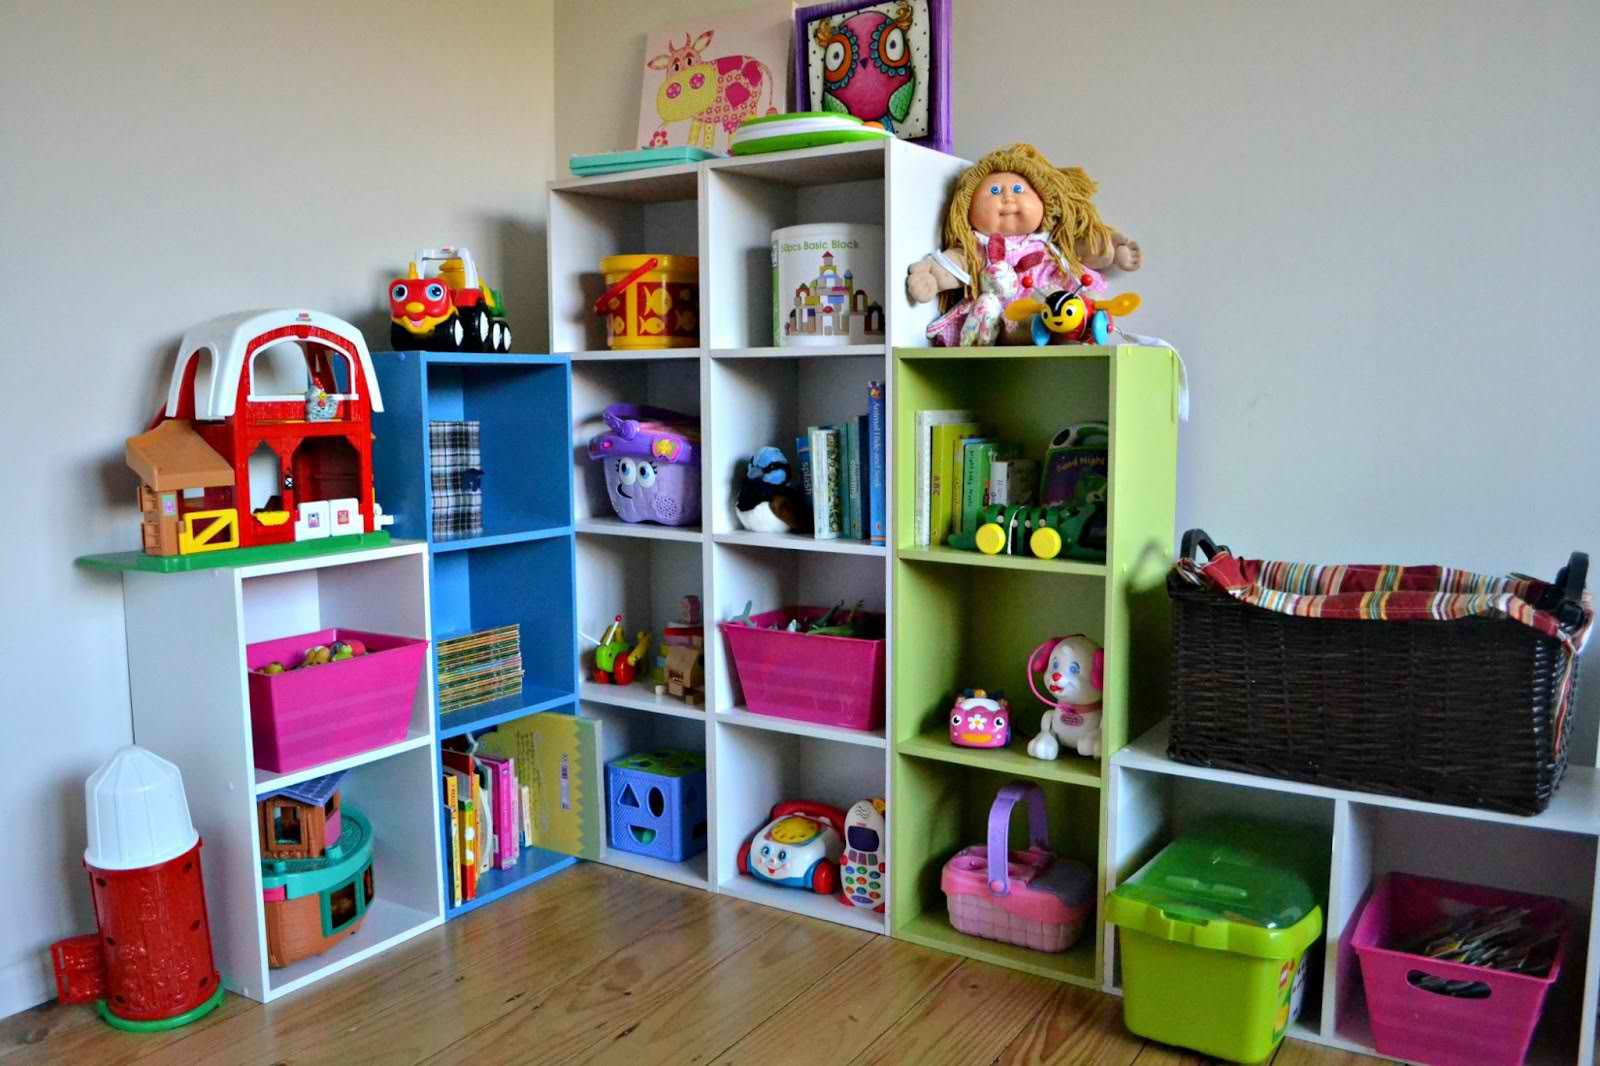 living room toy box large rooms with fireplaces 7 1 storage ideas diy plans in a small space your kids will love for spaces learn how to organize toys furniture and